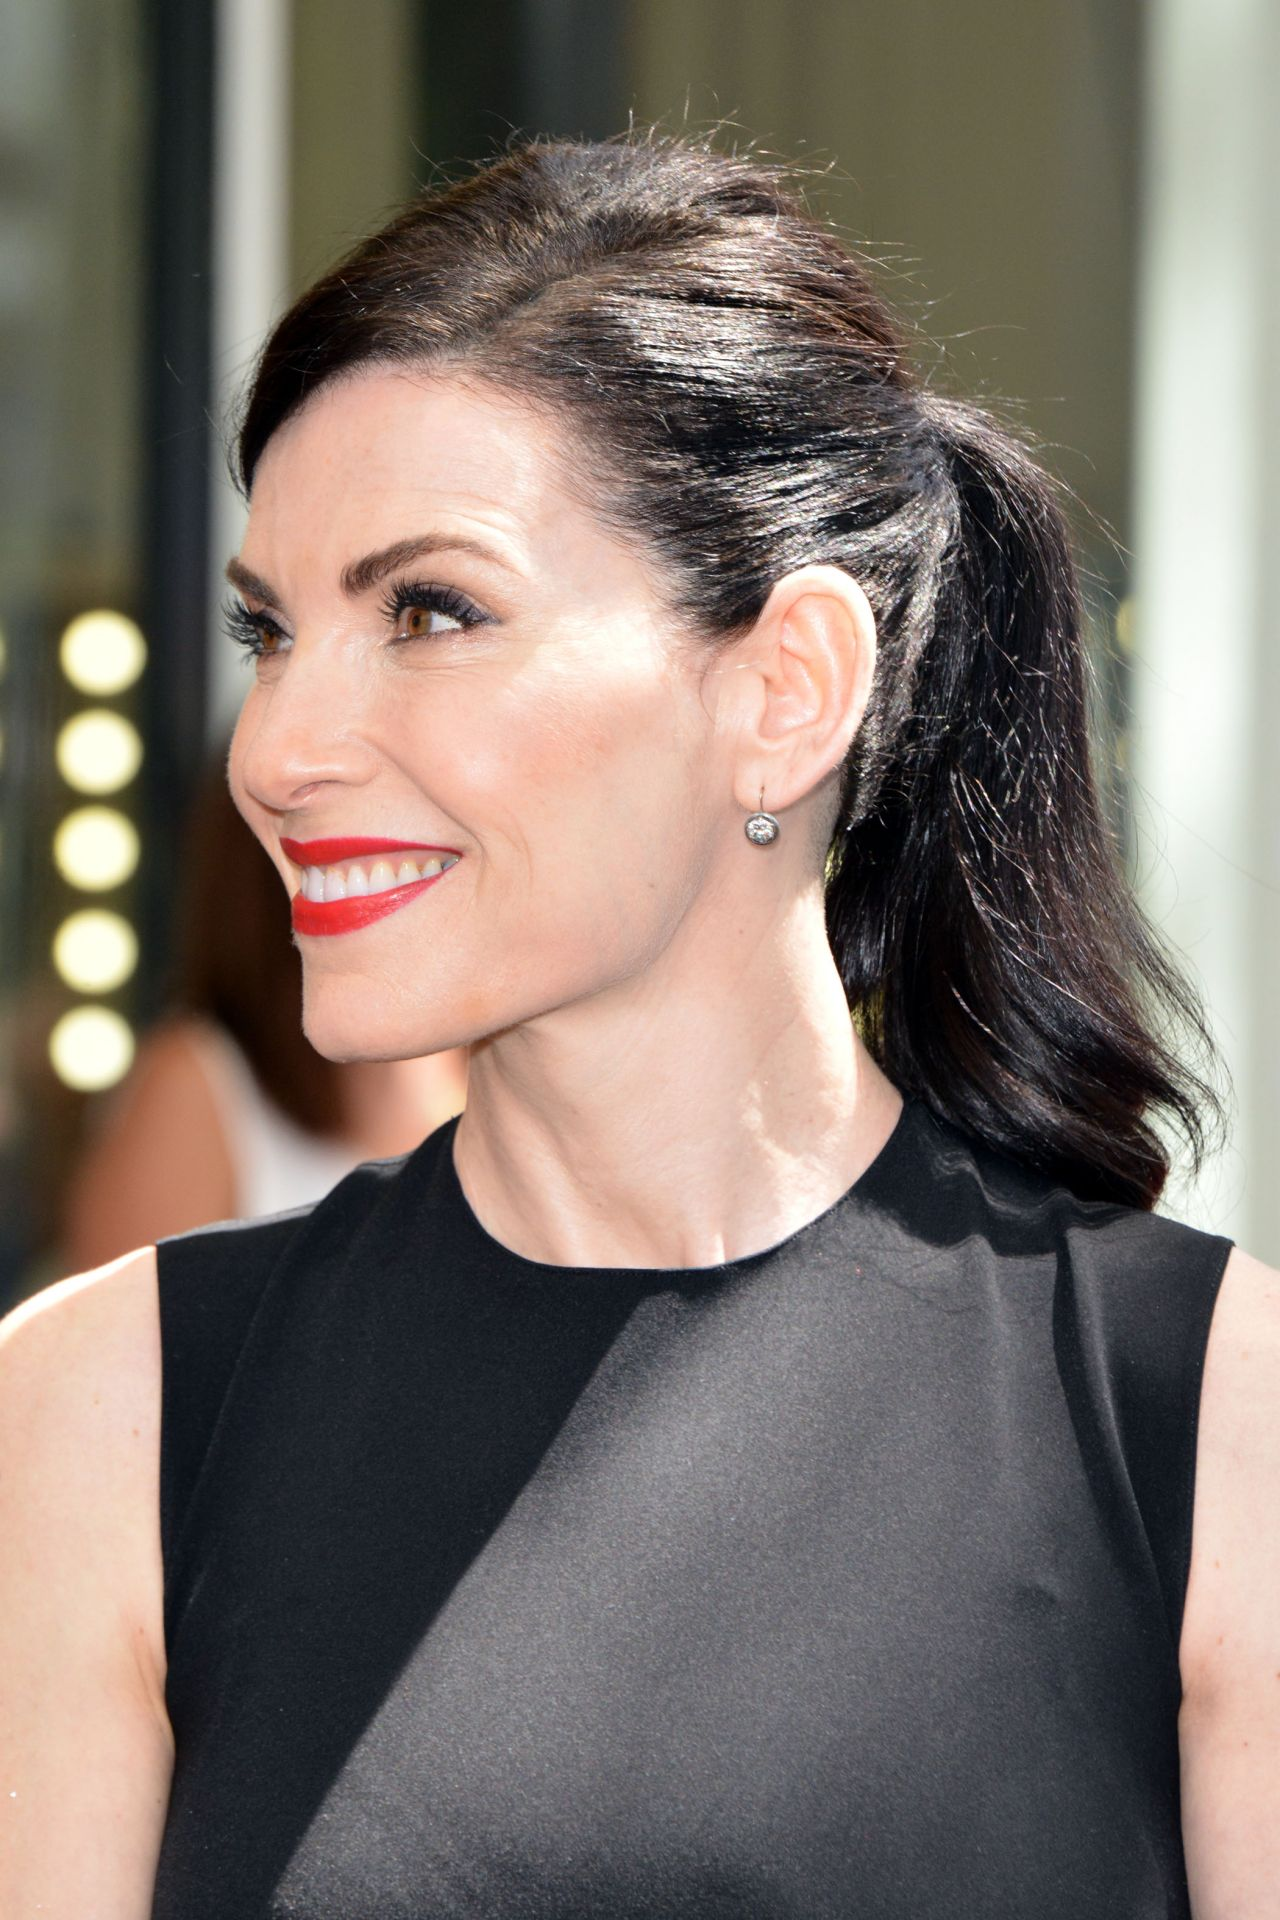 Julianna Margulies Honored With A Star On The Hollywood